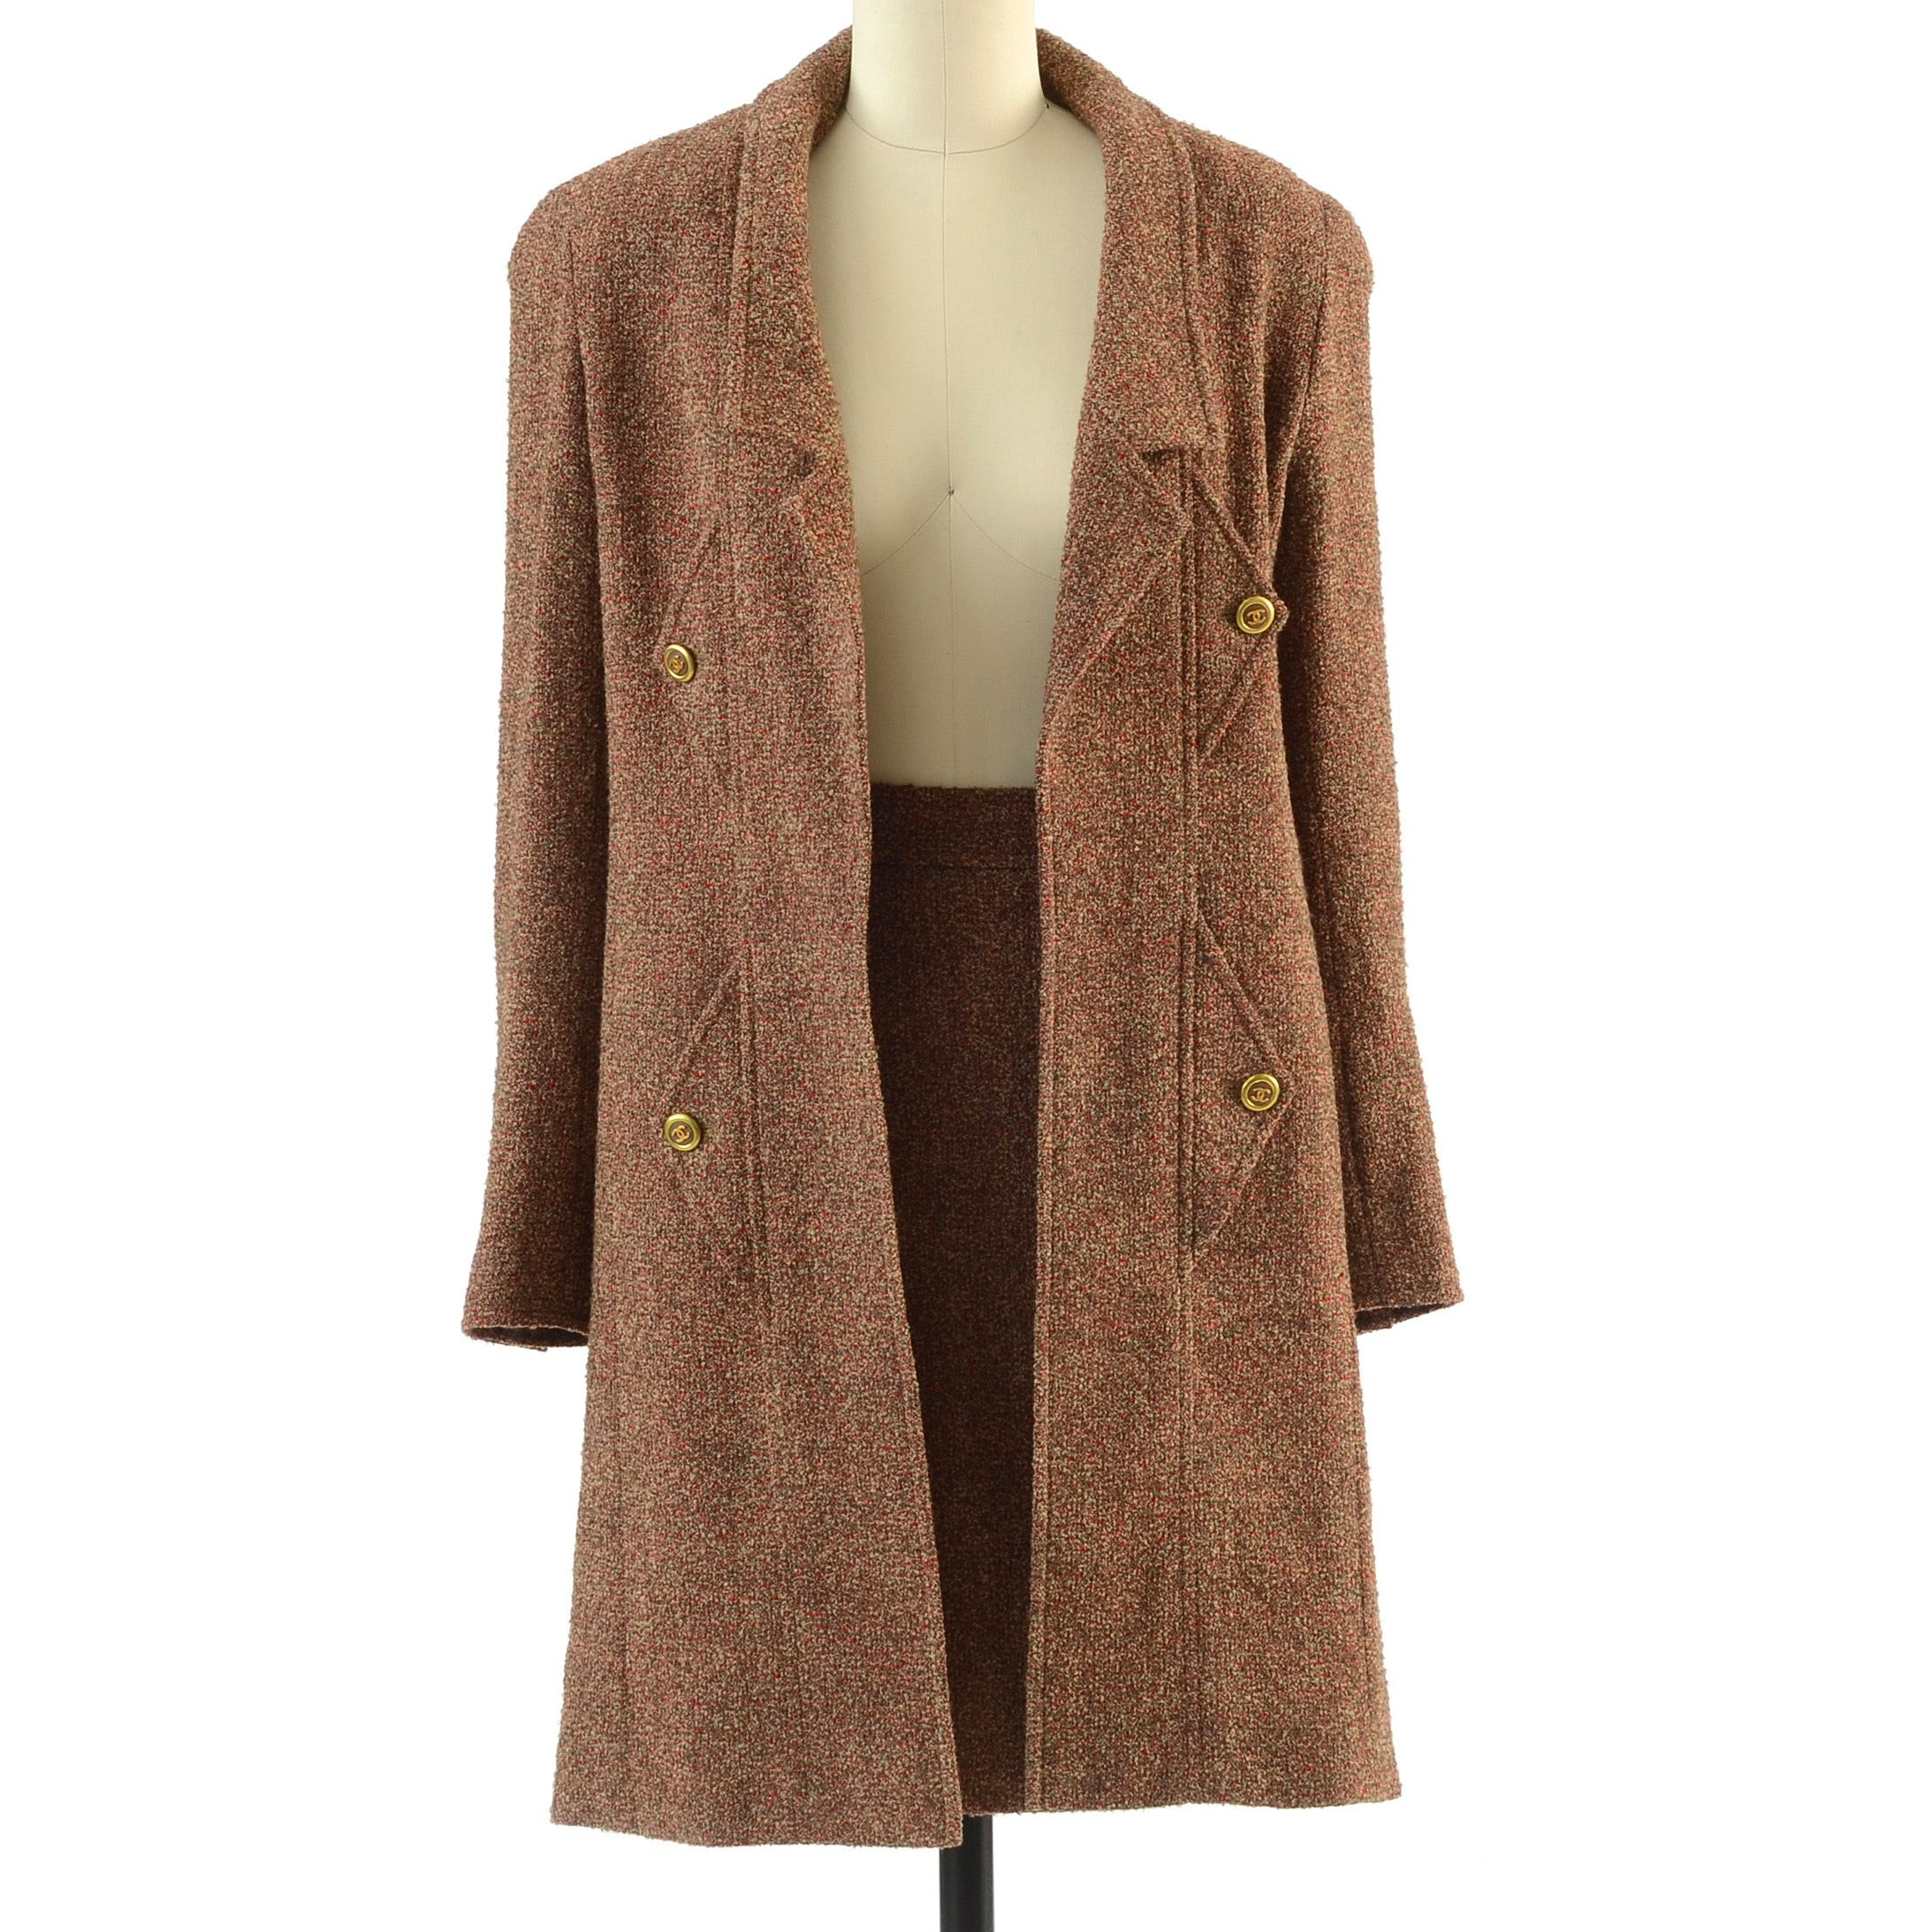 1990s Chanel Boutique Wool Boucle and Silk CC Logo Button Open Front Dress Coat and Skirt Ensemble